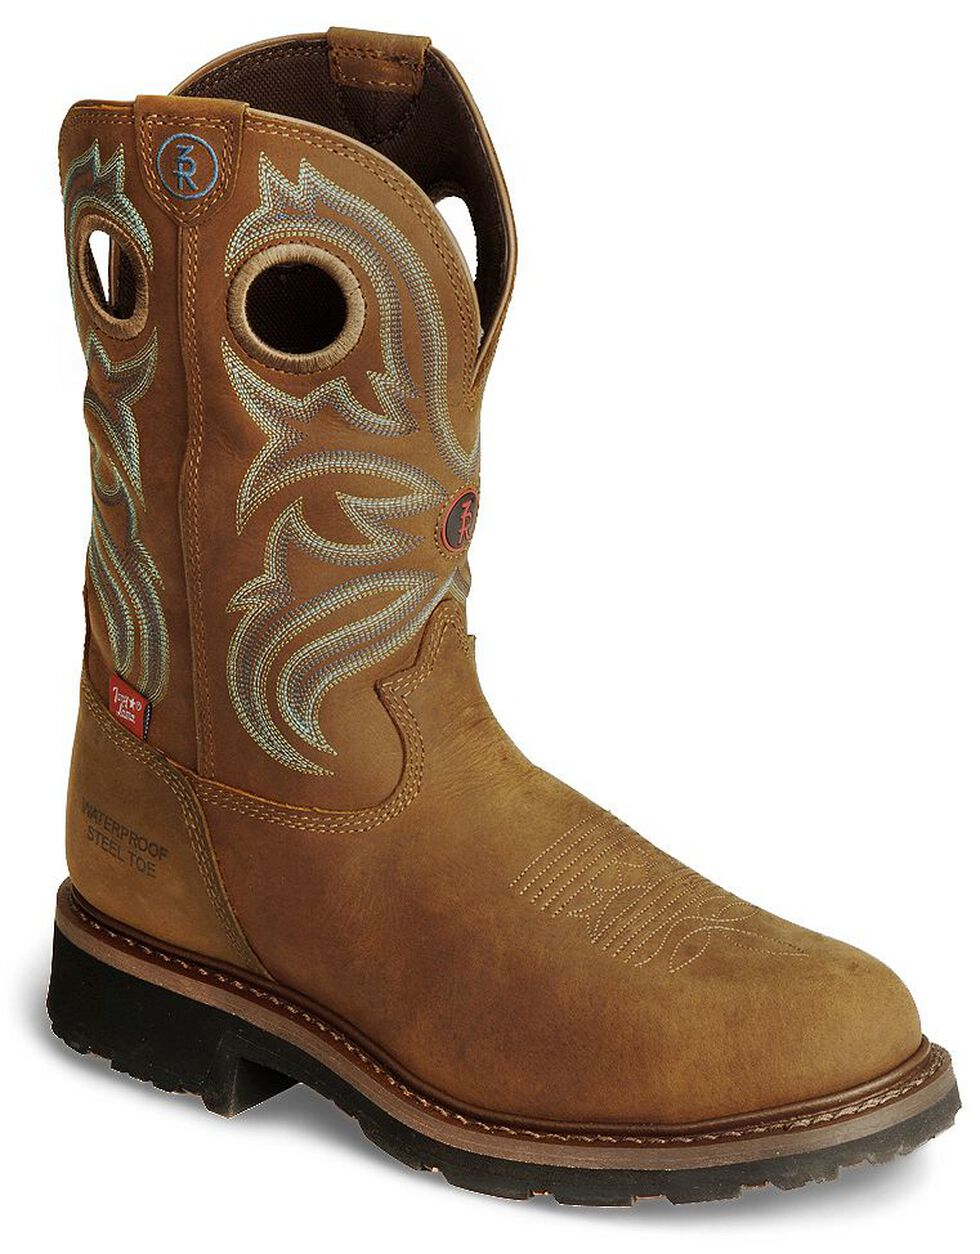 Tony Lama 3R Waterproof Work Boots - Steel Toe, Tan, hi-res